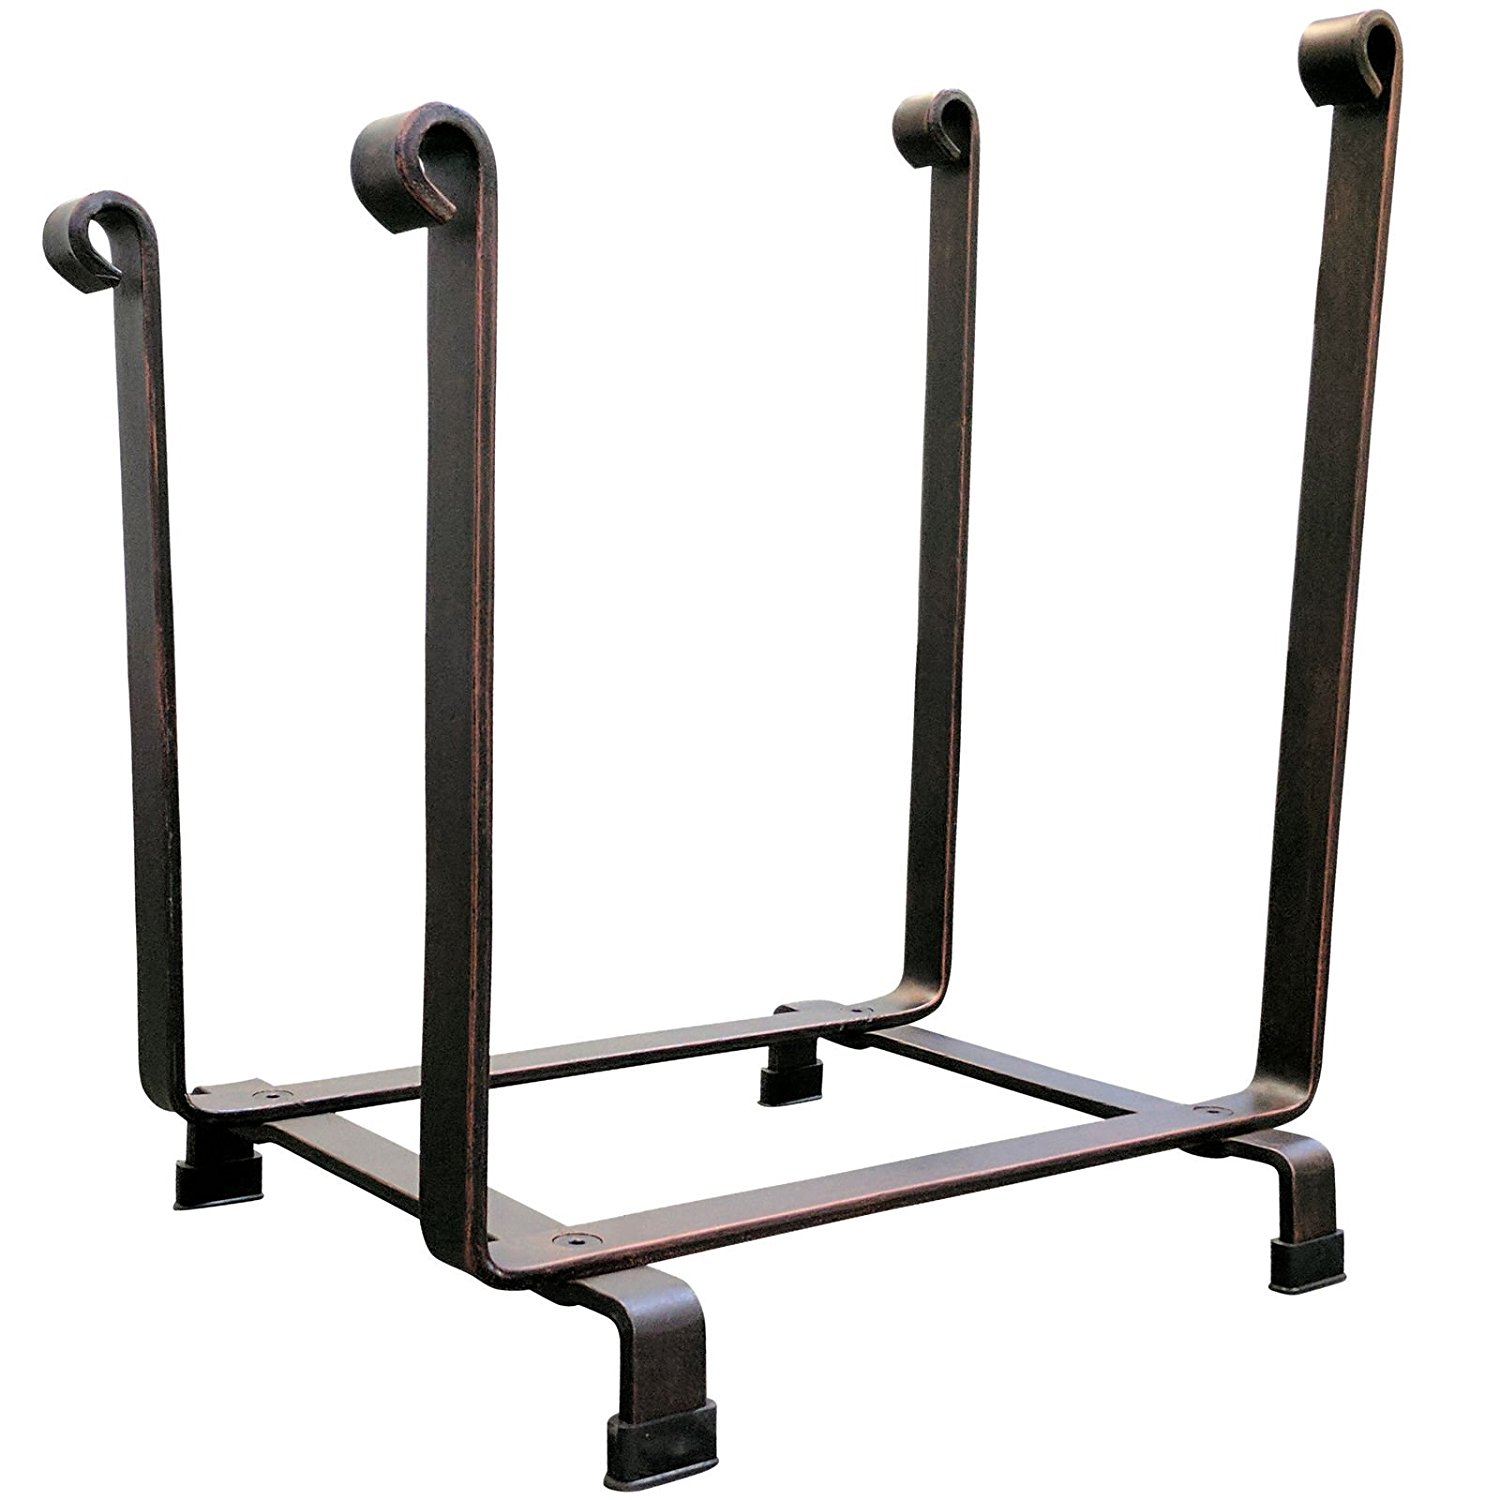 "Eight24hours Steel Hearth Firewood Log Rack Storage Holder 18"" H x 17"" L Only Free E-Book"